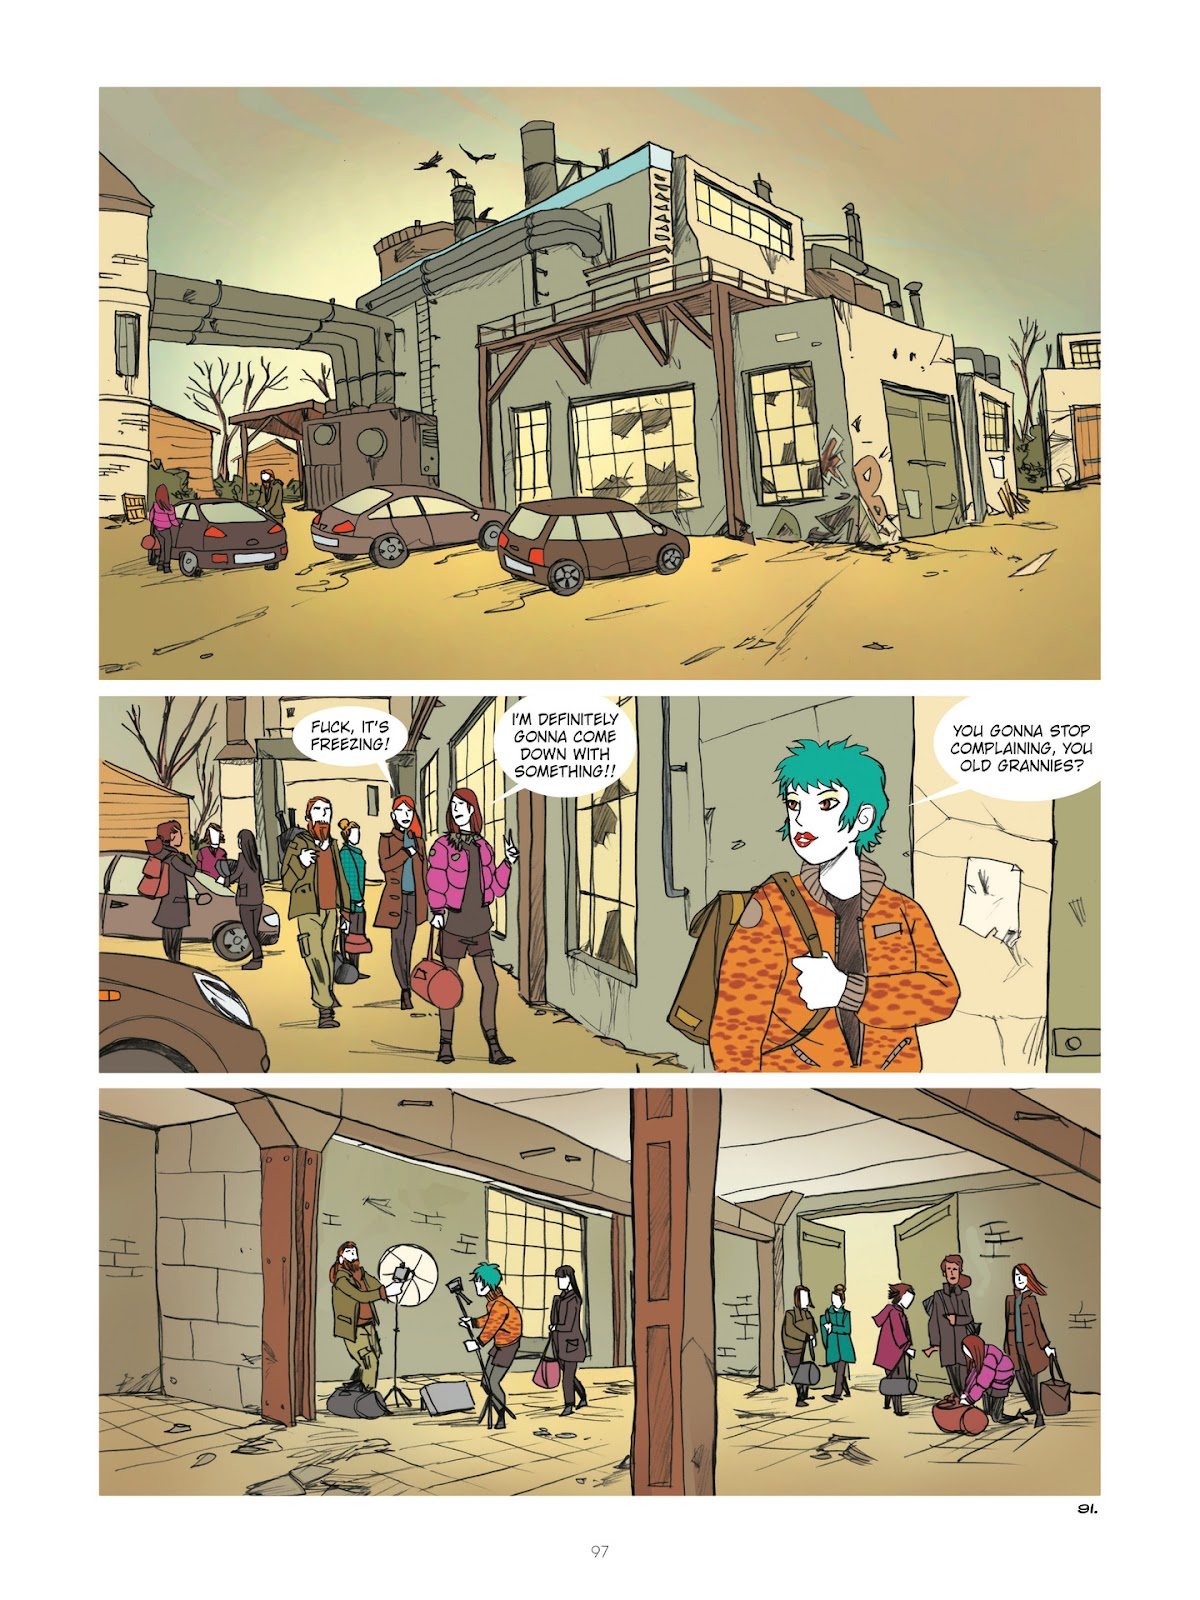 Read online Diary of A Femen comic -  Issue # TPB - 99